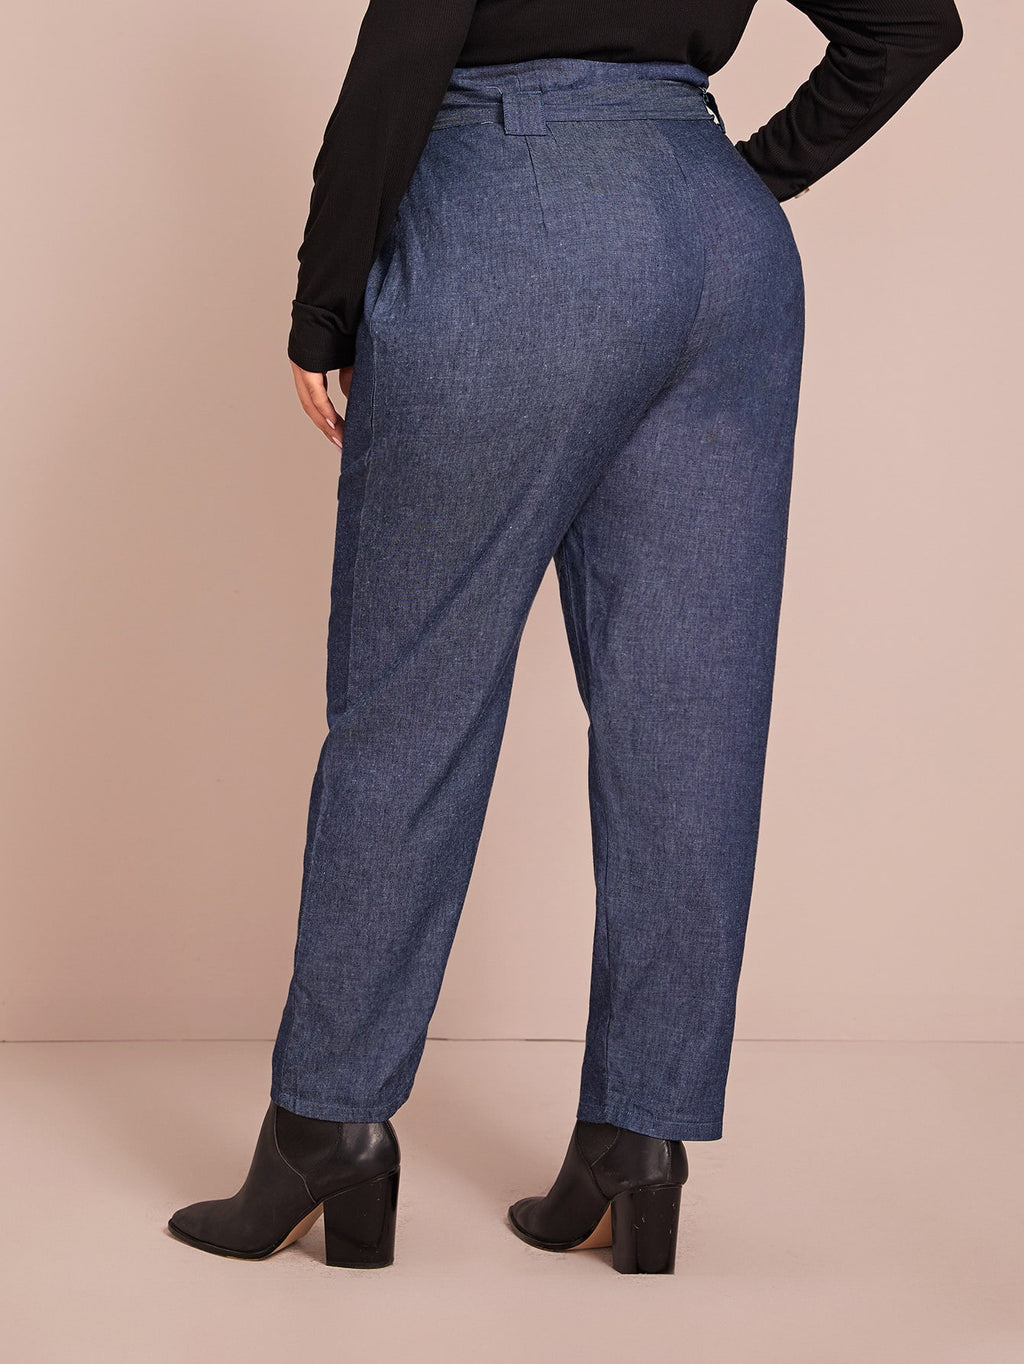 Plus Size Self Tie Solid Carrot Jeans